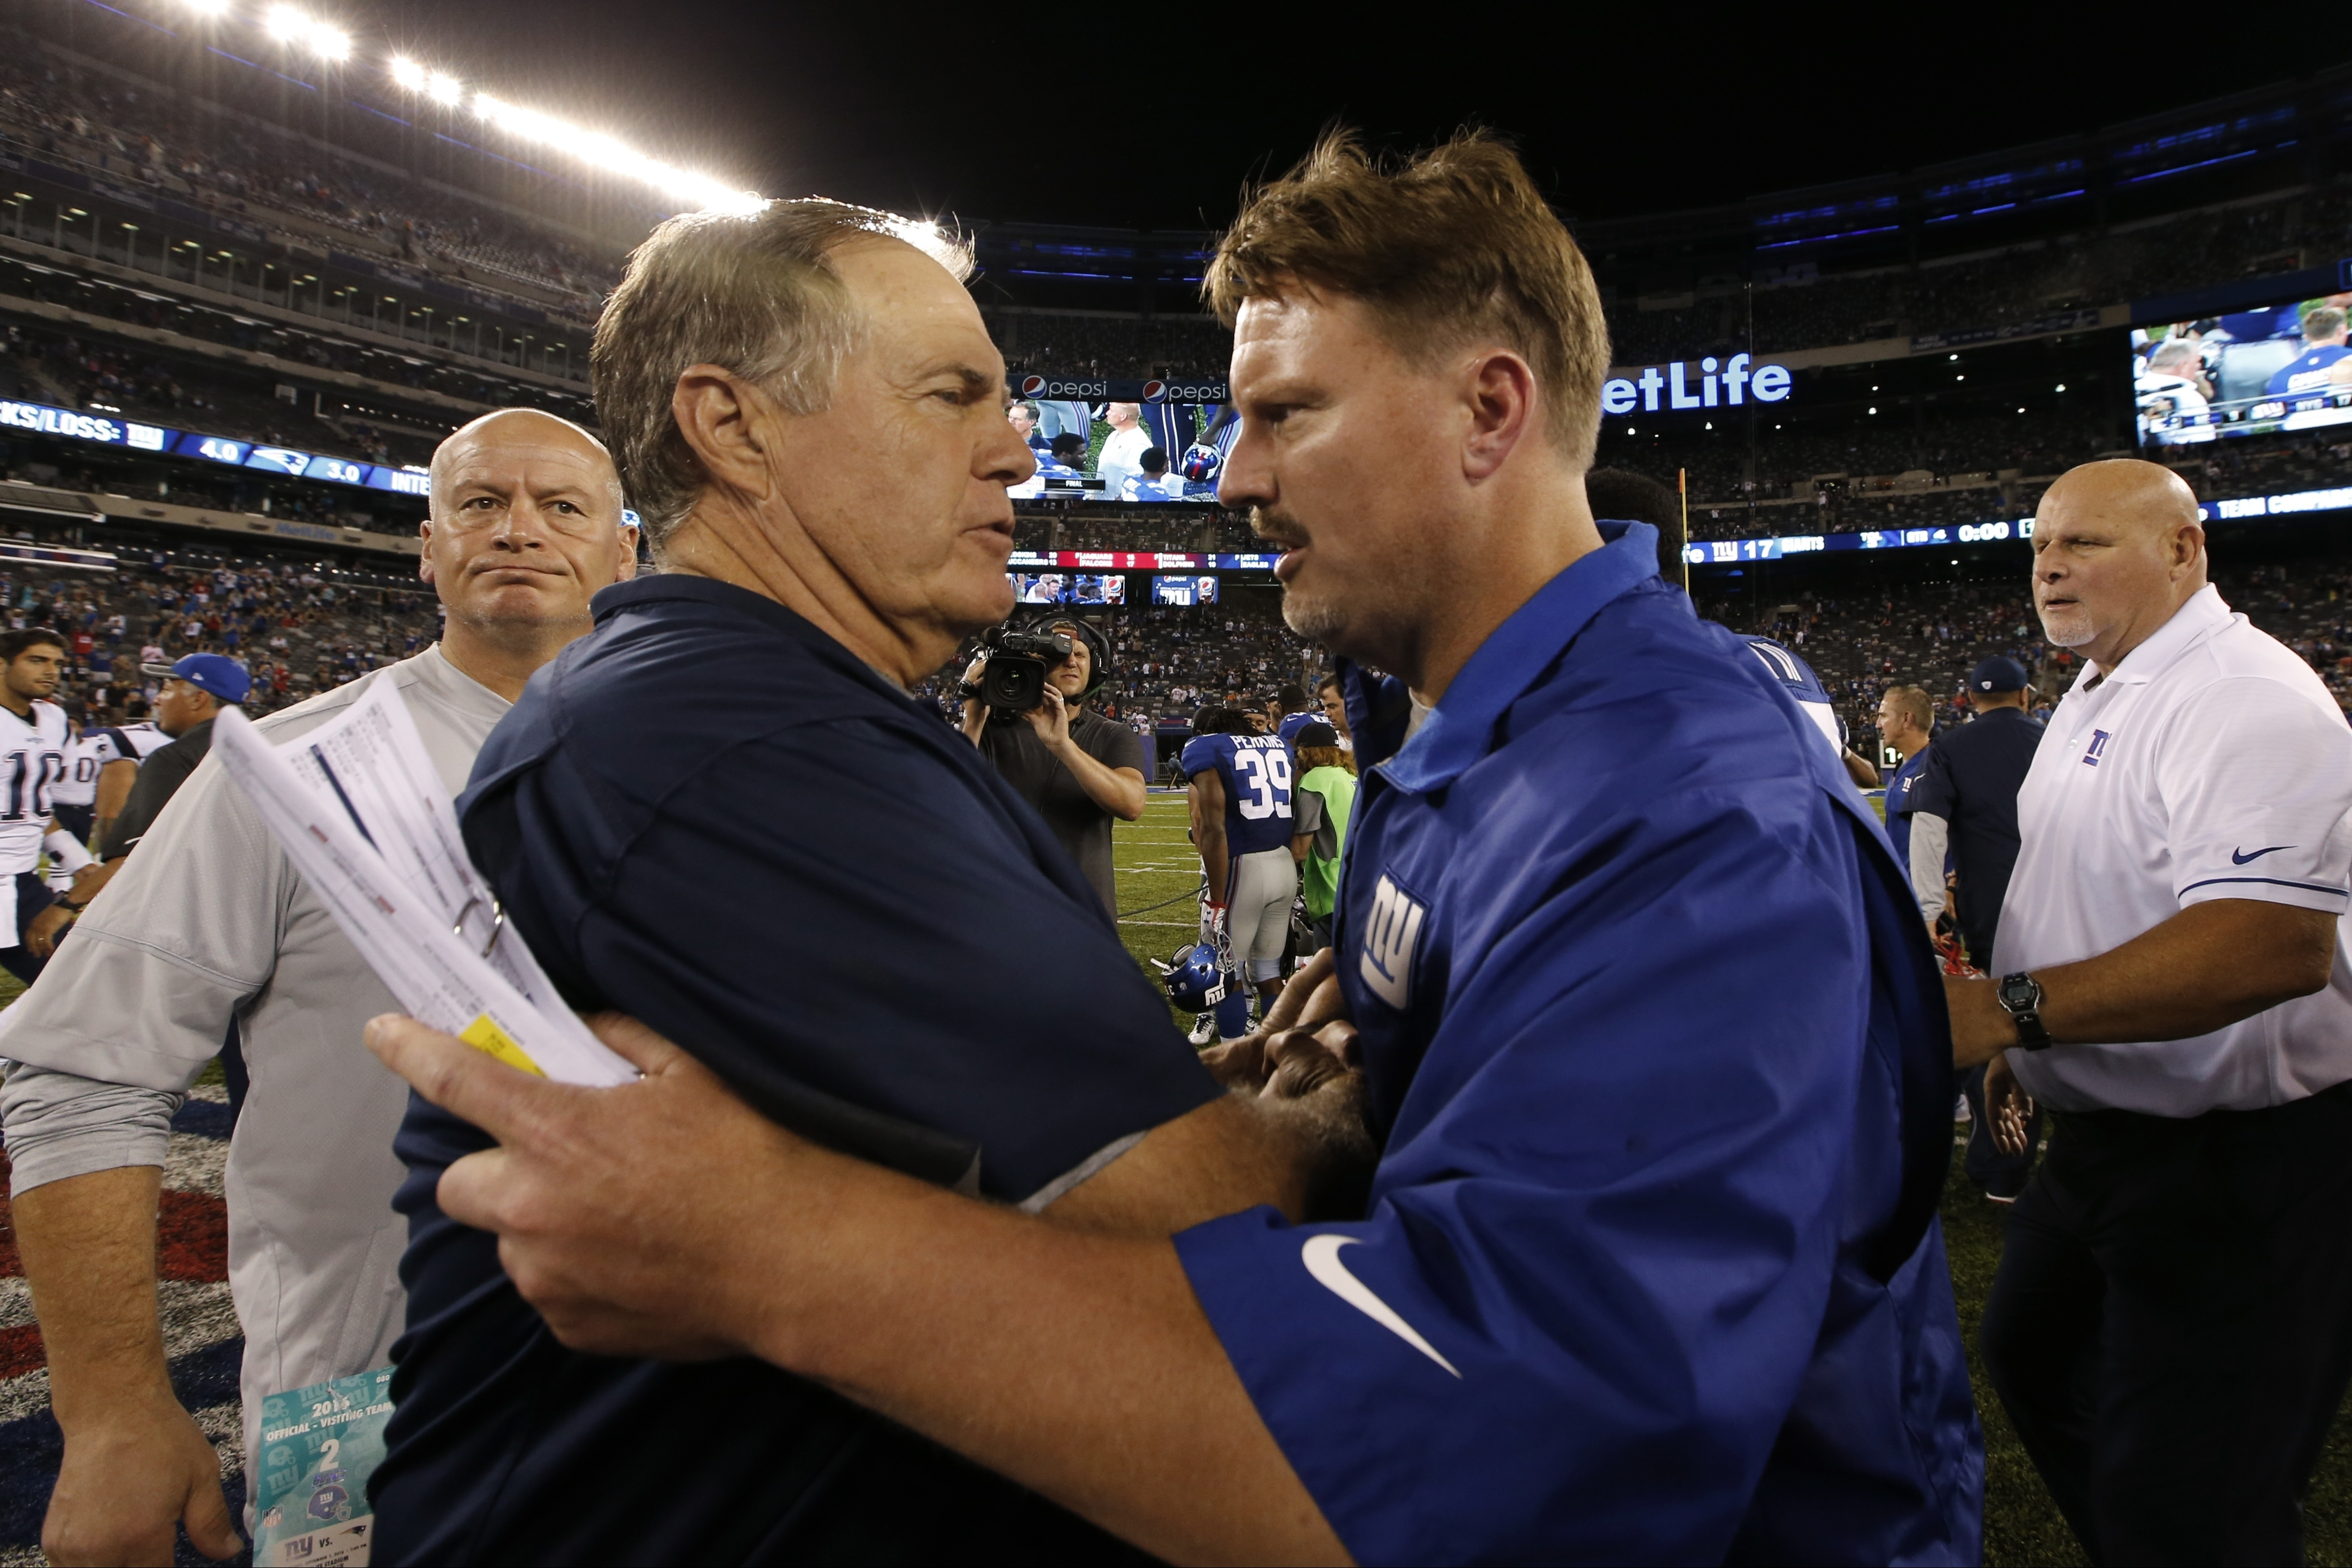 New England Patriots coach Bill Belichick, left, and New York Giants coach Ben McAdoo, right, meet after a preseason NFL football game Thursday, Sept. 1, 2016, in East Rutherford, N.J. The Giants won 17-9. (AP Photo/Kathy Willens)